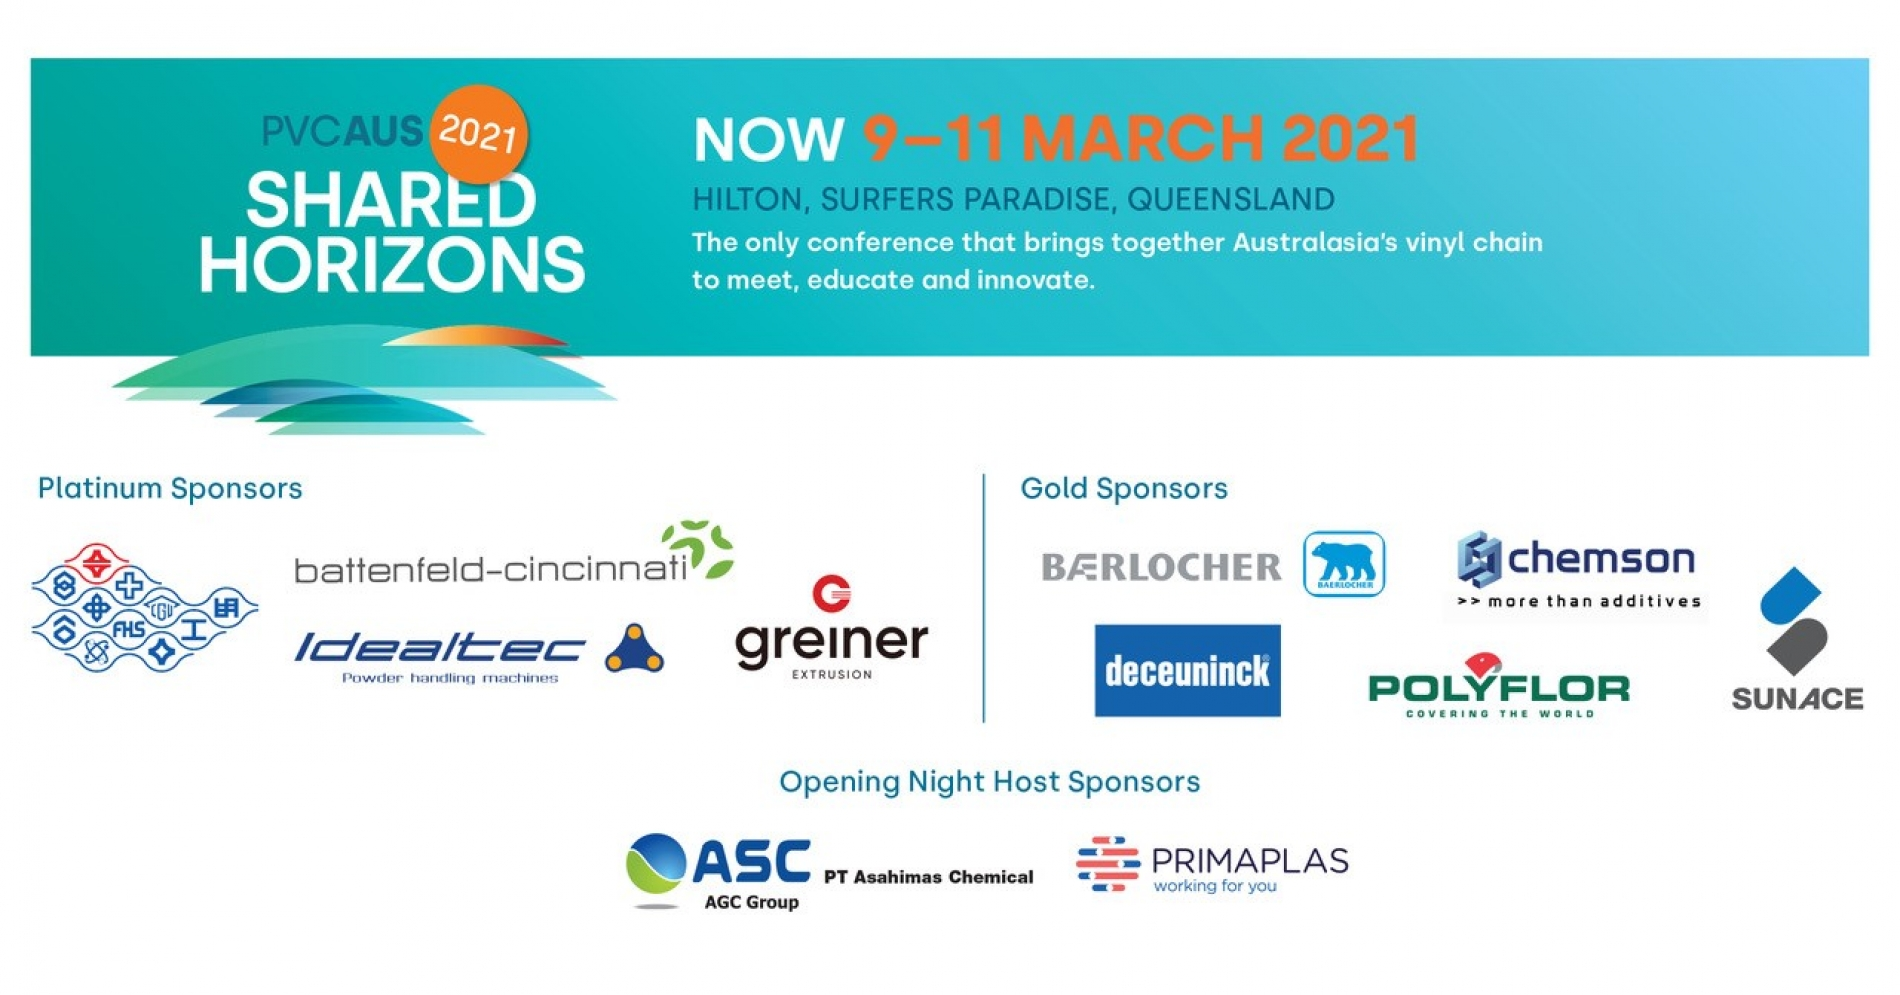 PVC AUS 2020 'Shared Horizons' event postponed to March 2021